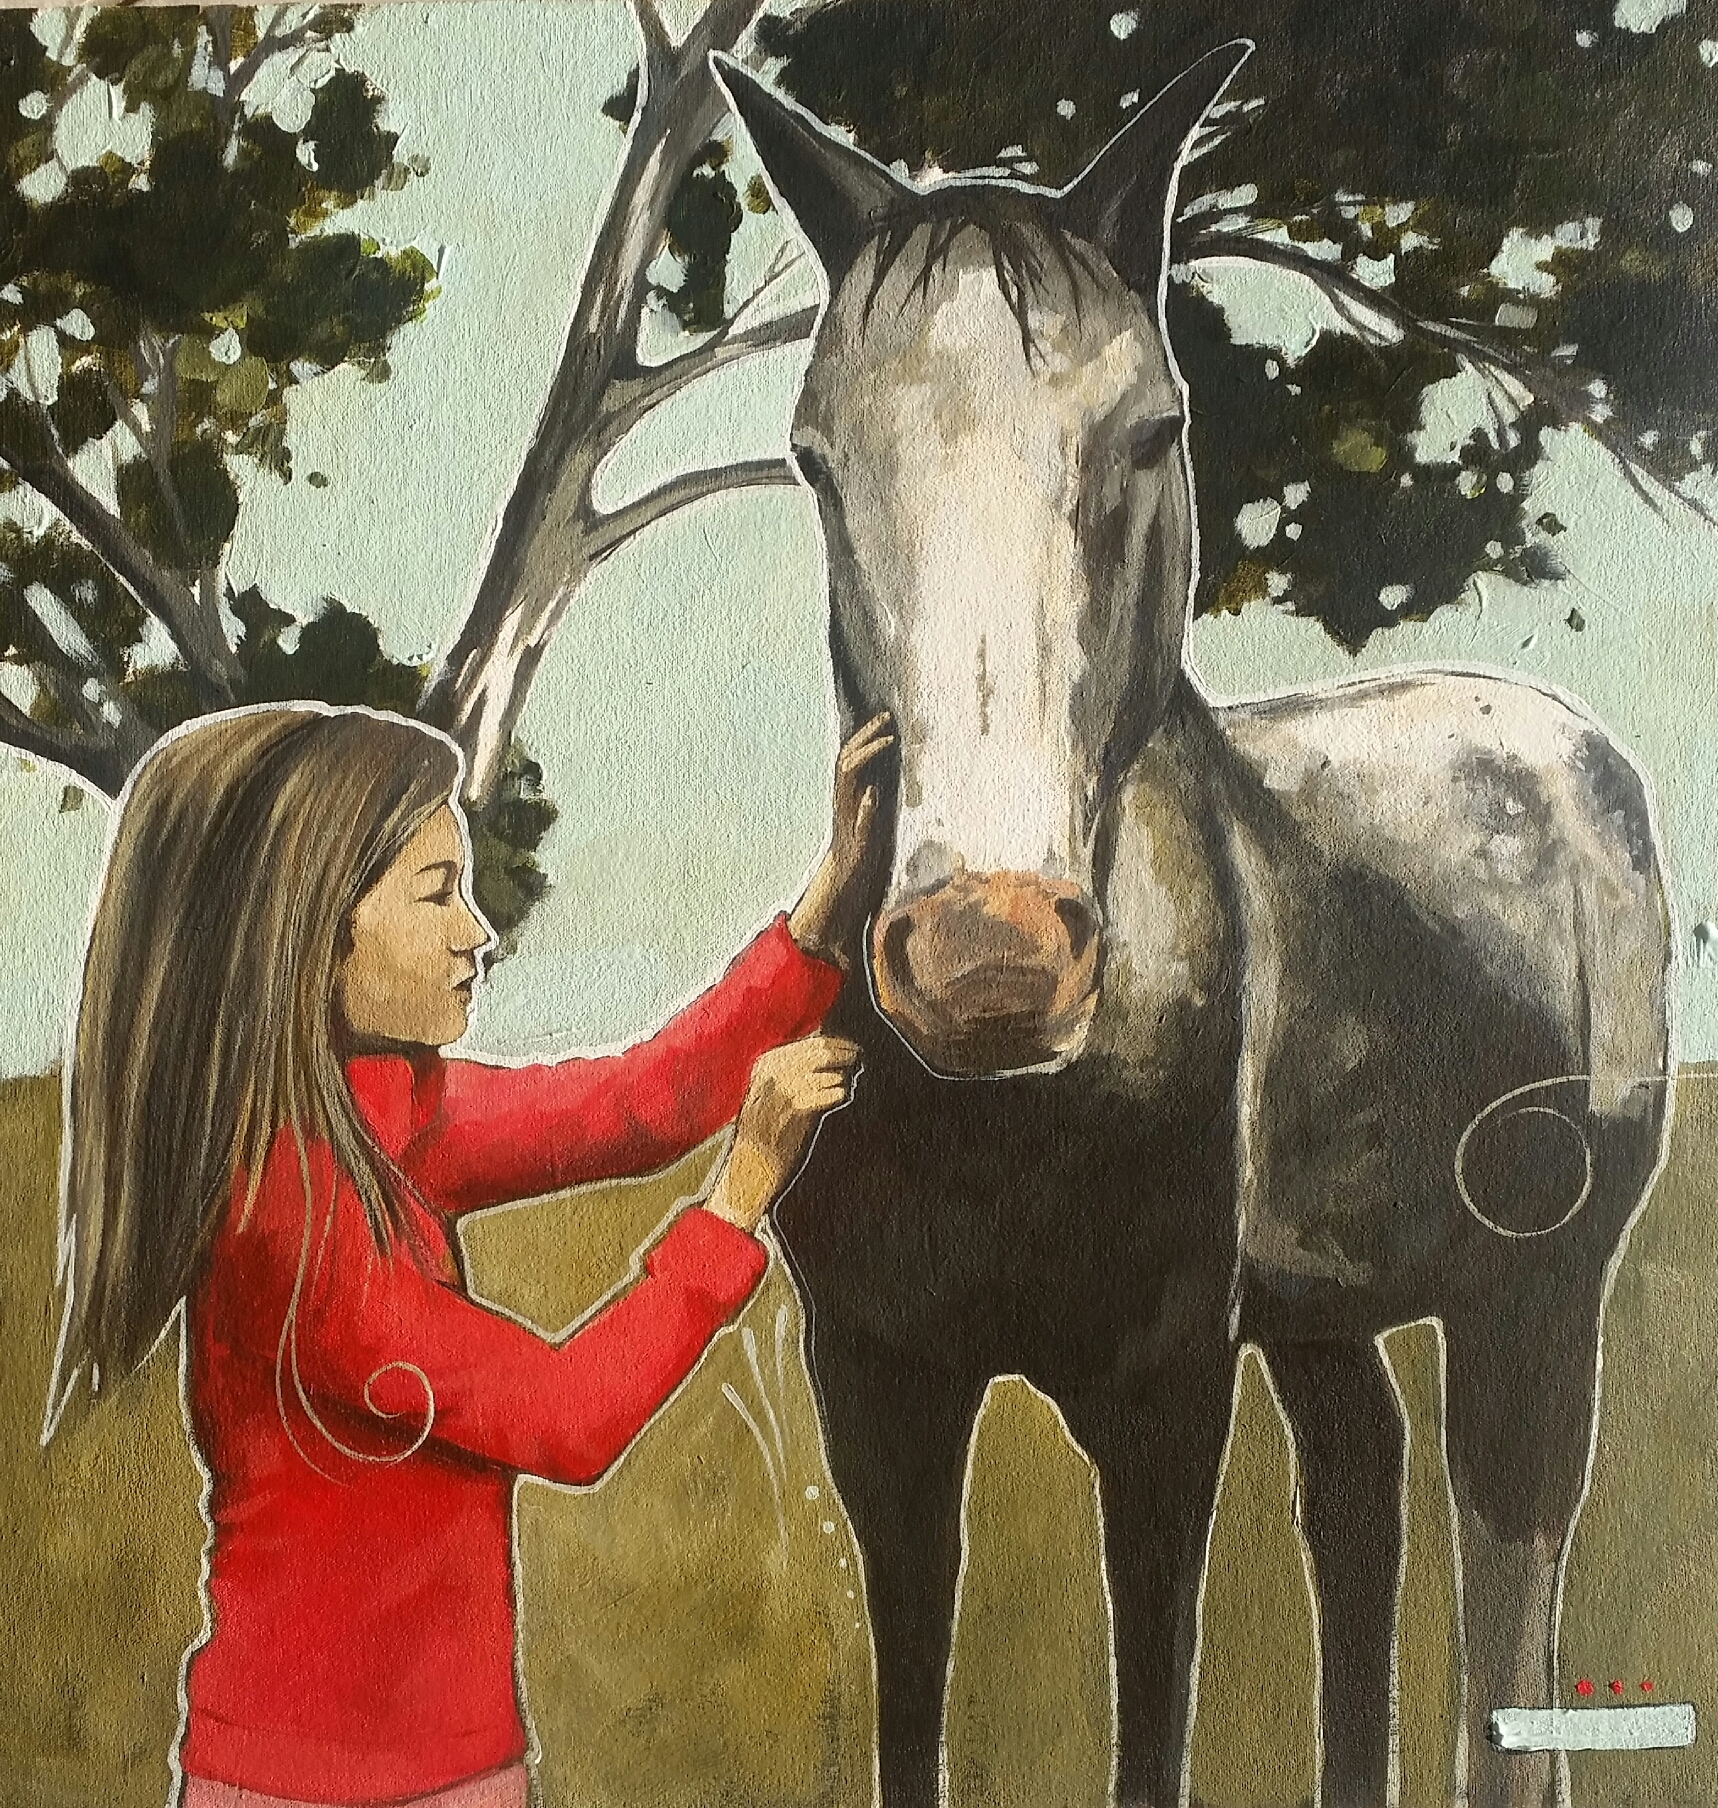 Little girl and her horse friend